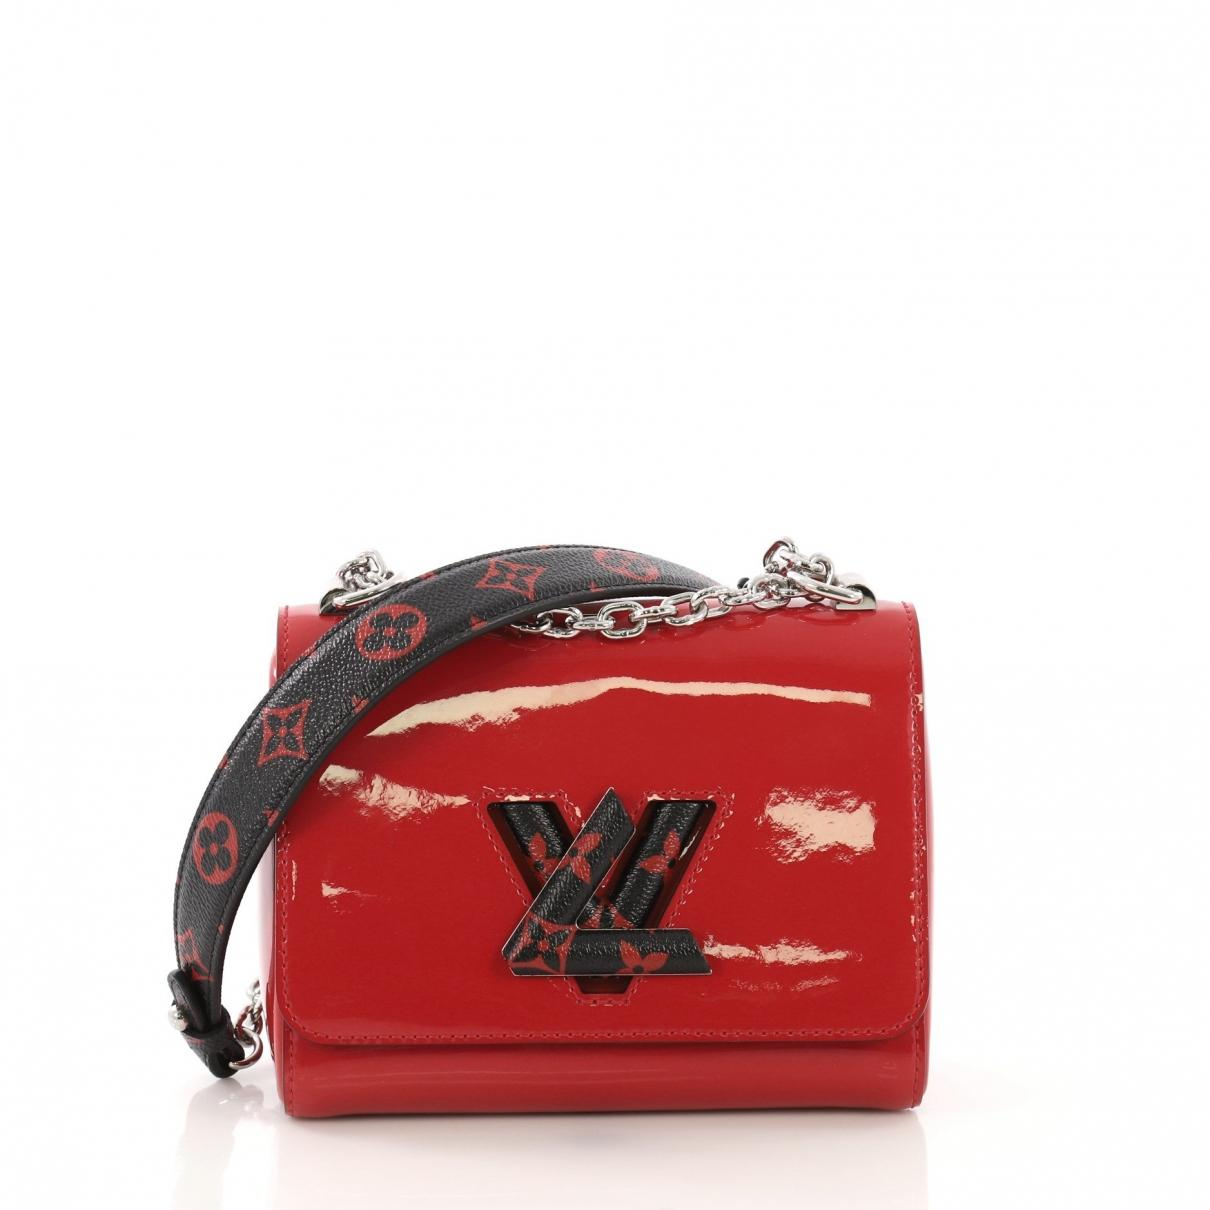 ac0699f497e2 Louis Vuitton Twist Red Patent Leather Handbag in Red - Lyst